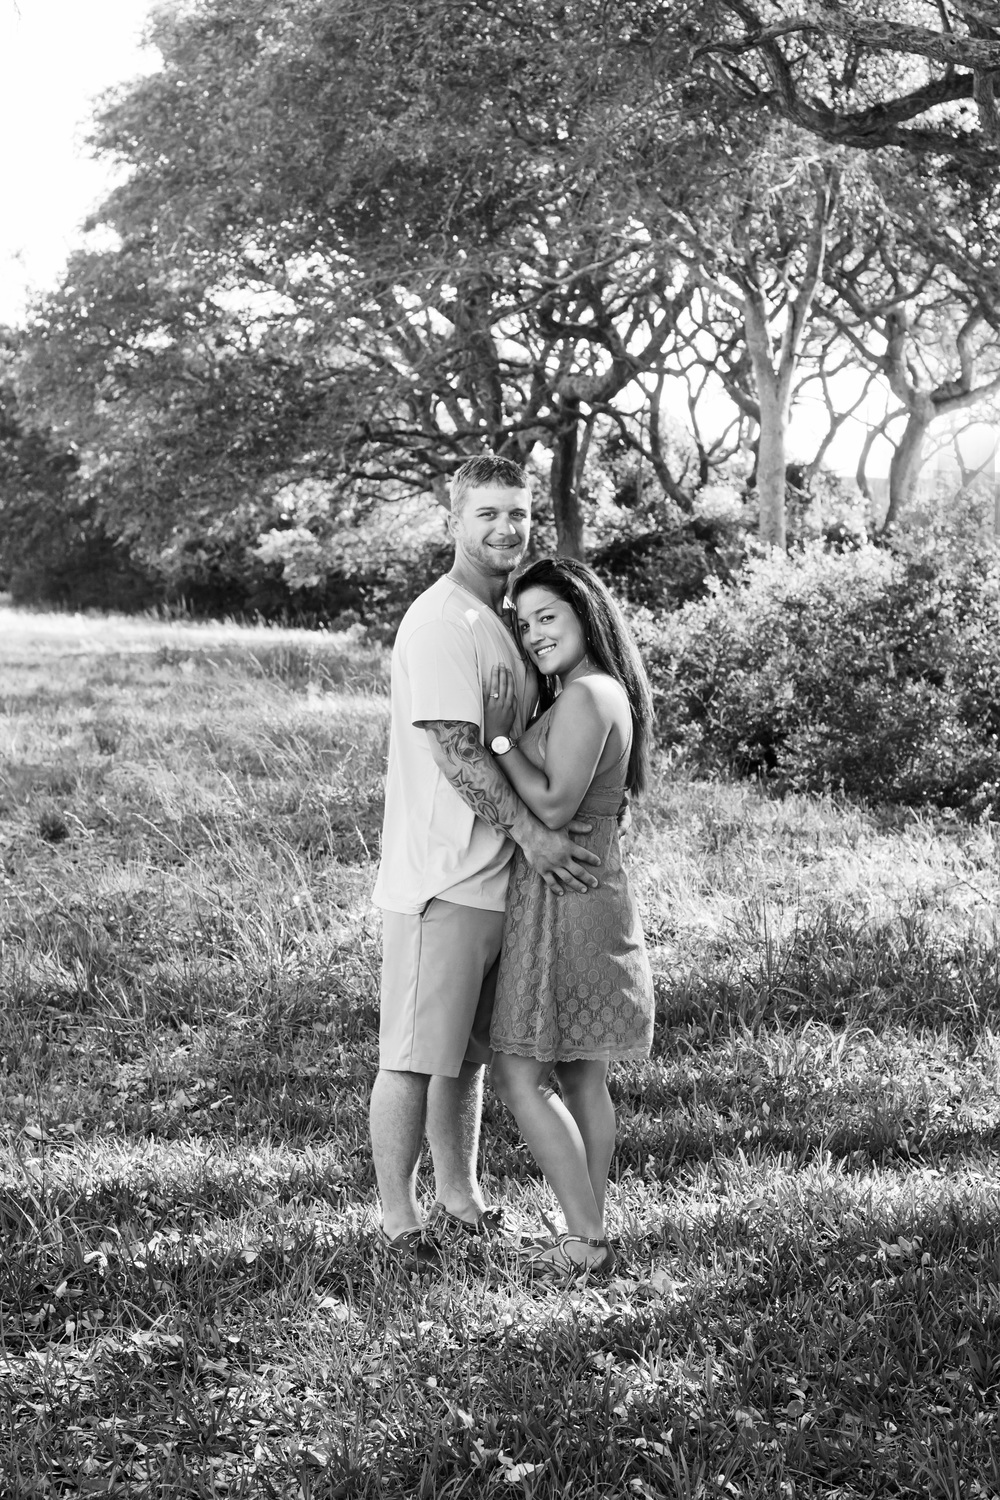 TIFFANY_ABRUZZO_PHOTOGRAPHY_ENGAGEMENT_26bw.jpg